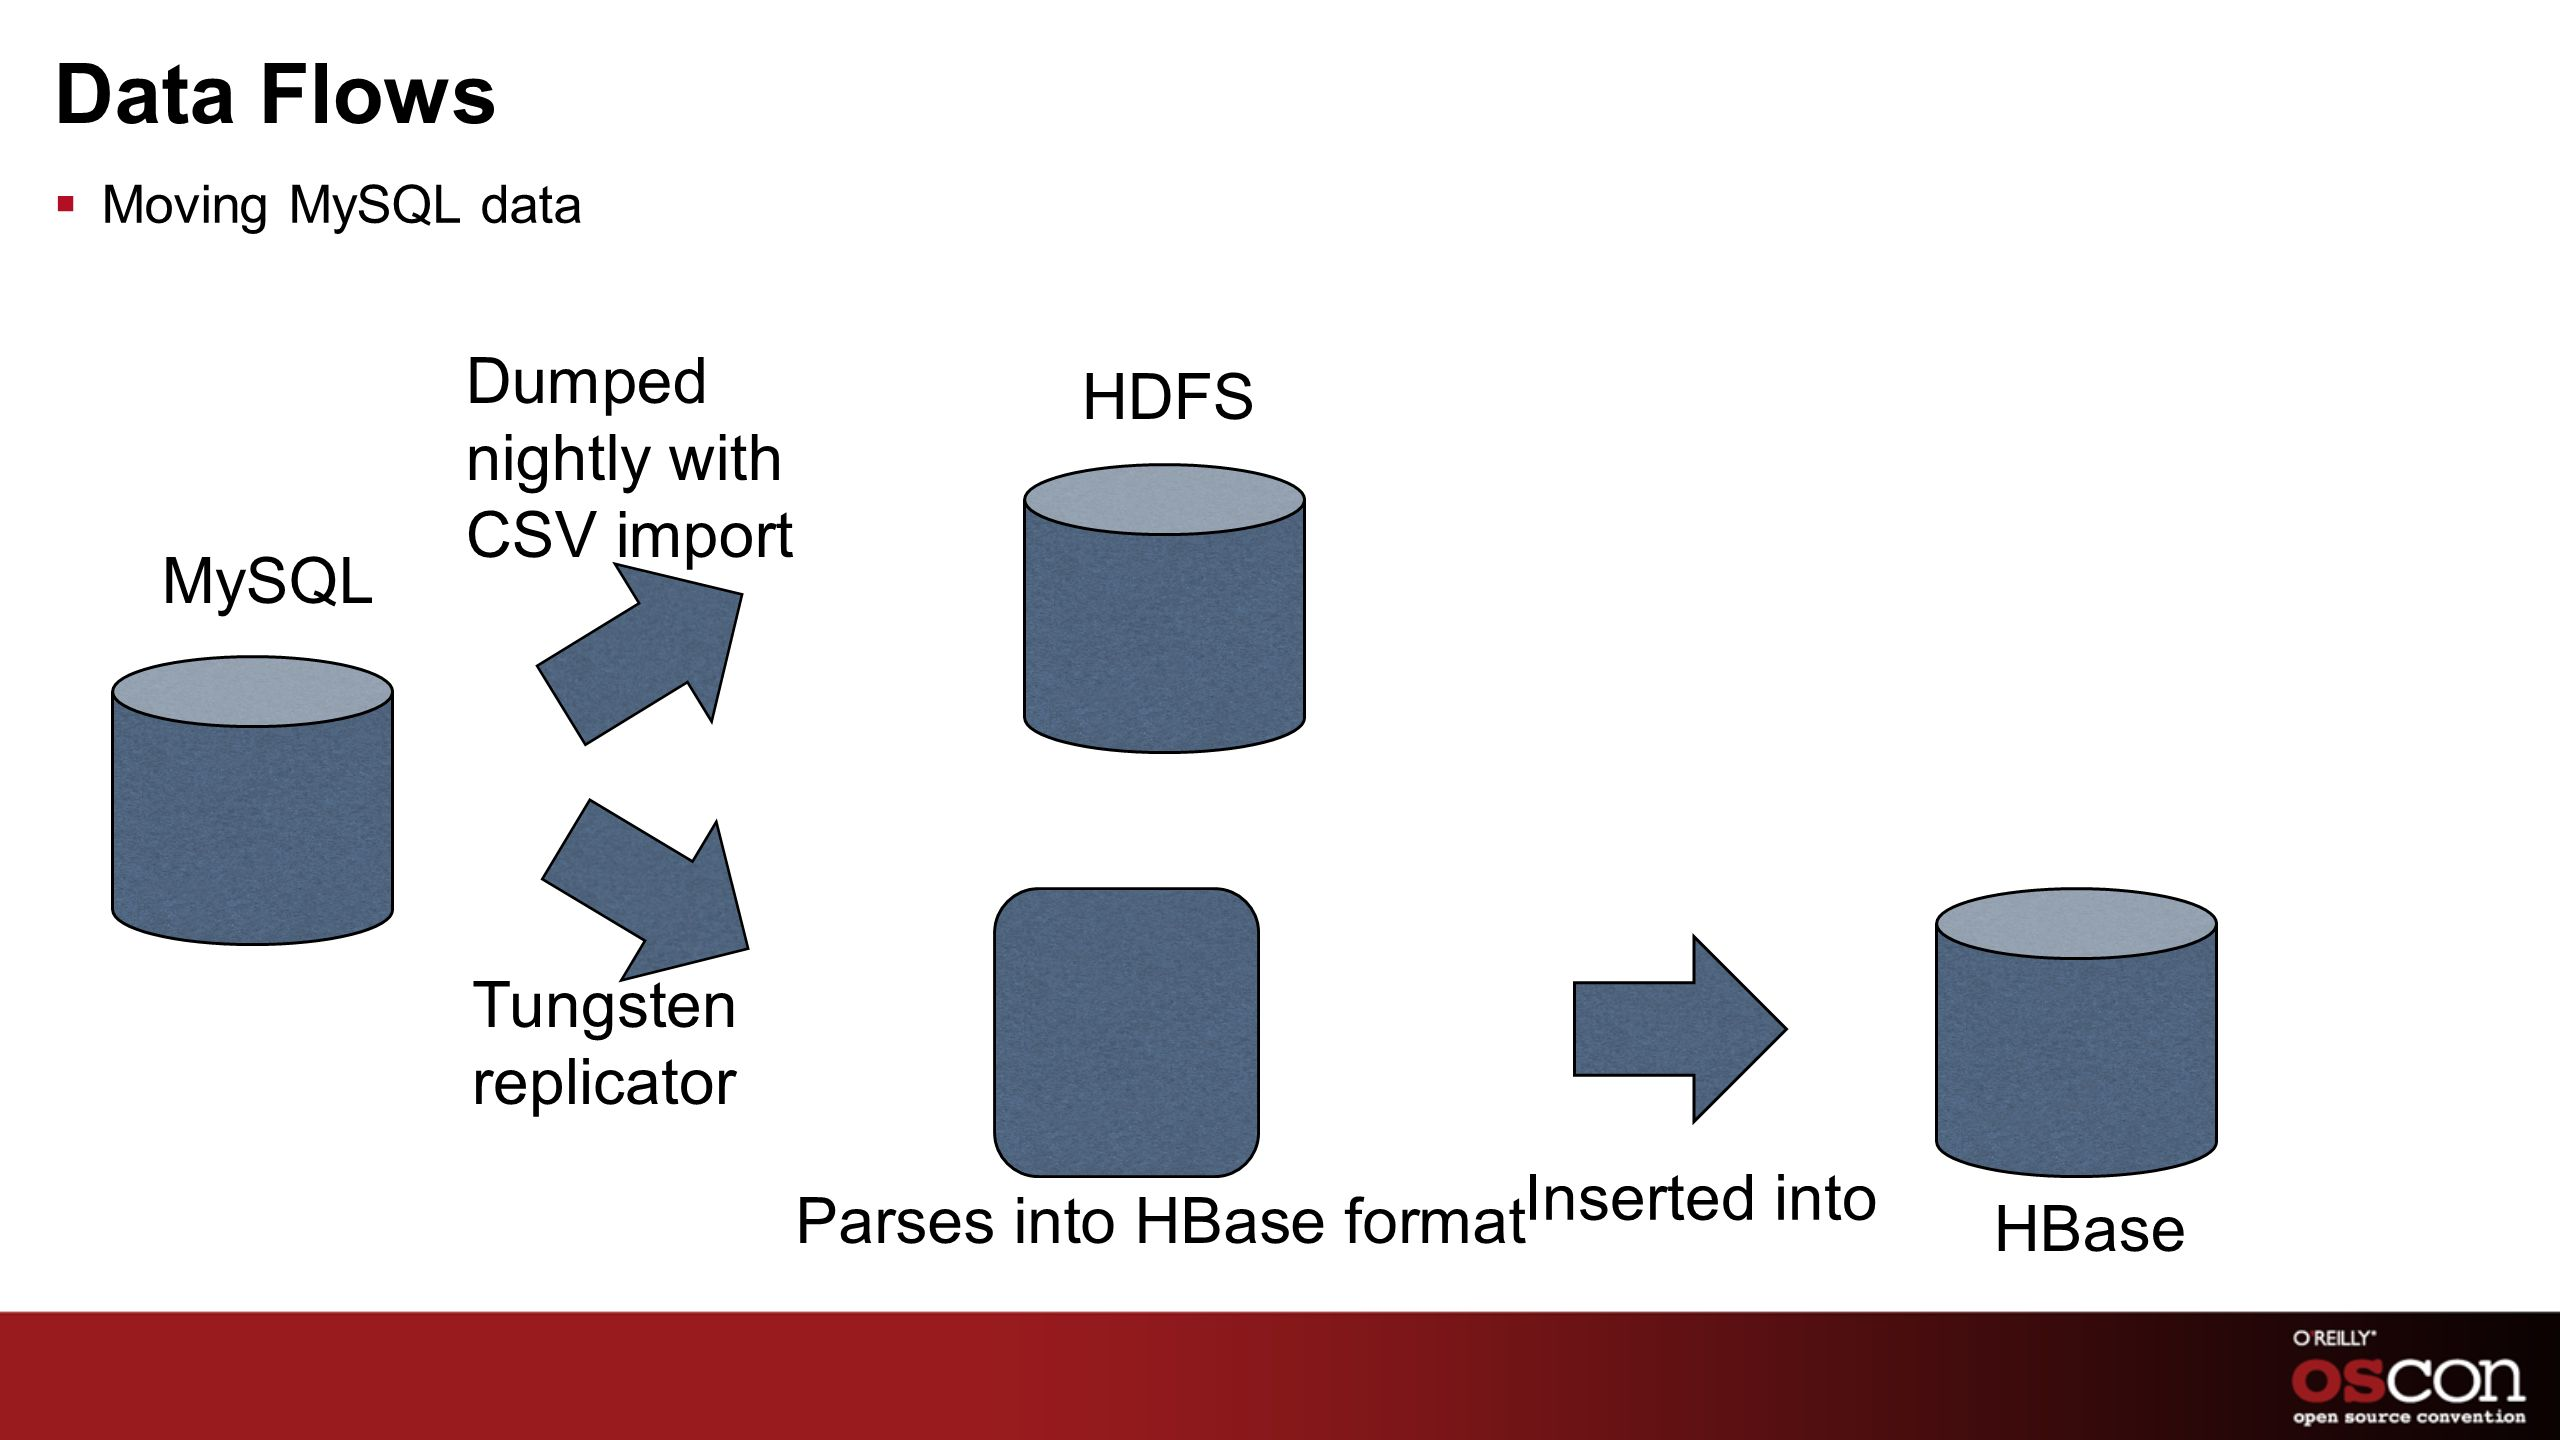 Data Flows Moving MySQL data MySQL Dumped nightly with CSV import HDFS Tungsten replicator Inserted into HBase Parses into HBase format